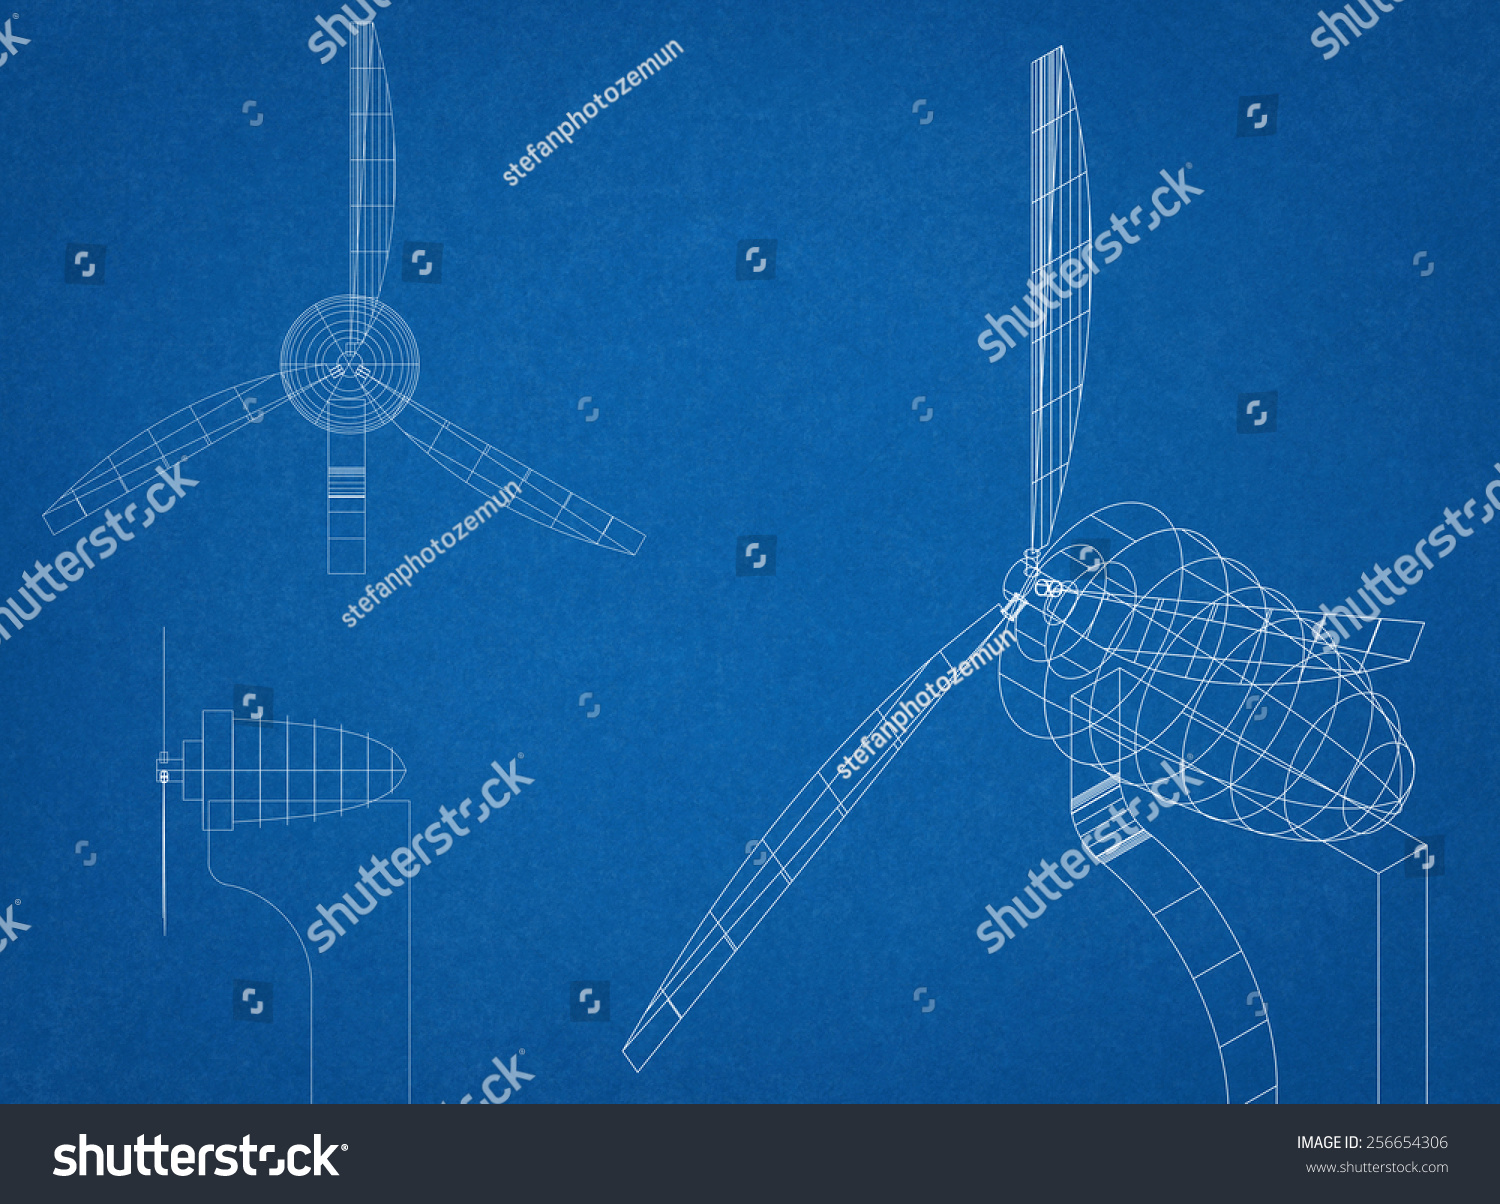 Wind Turbine Electrical Diagram Blueprint Stock Illustration 256654306 Shutterstock